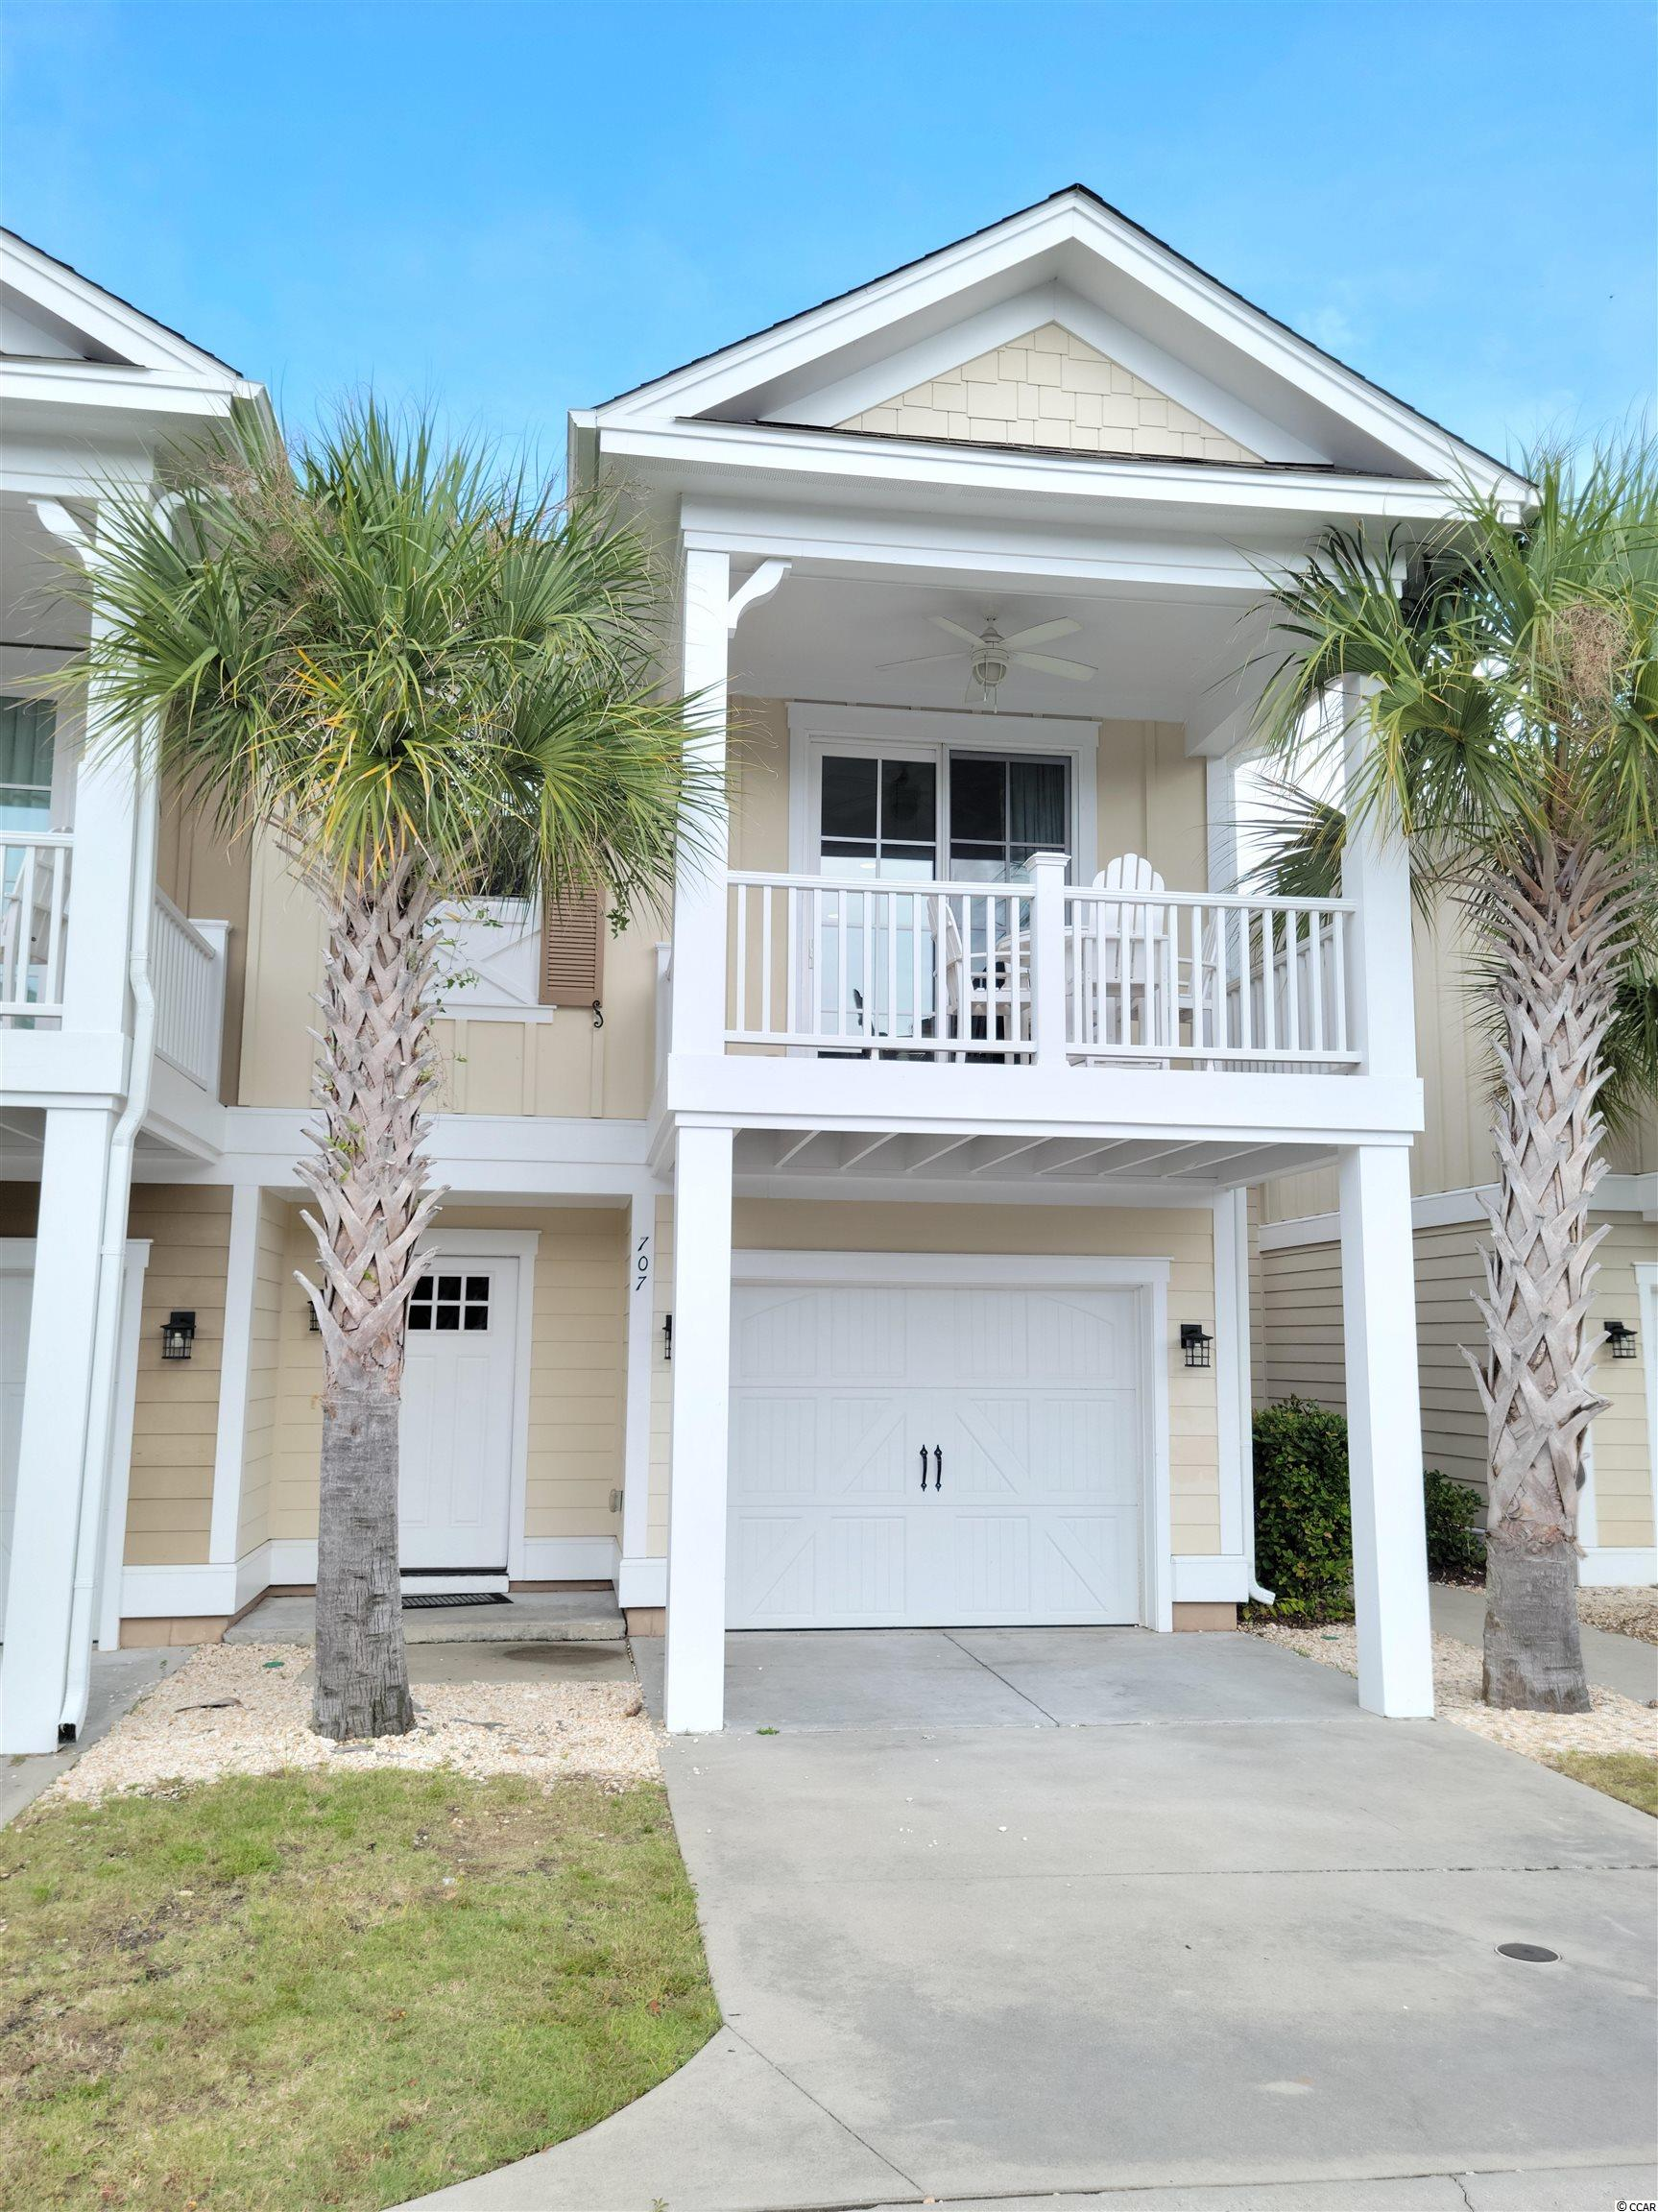 Spectacular furnished 2 BR/2 BA attached townhouse in the Exchange Villas at North Beach Plantation an oceanfront community. This townhome features an open floorplan with attached 1-car garage and covered balcony. North Beach Plantation offers a 2.5-acre oceanfront pool area with the only swim-up bar along the Grand Strand, world-class Cinzia Spa, Beach Fit fitness center, and on-site restaurants conveniently located near Barefoot Landing with easy access to Hwy. 22 and Hwy. 31.